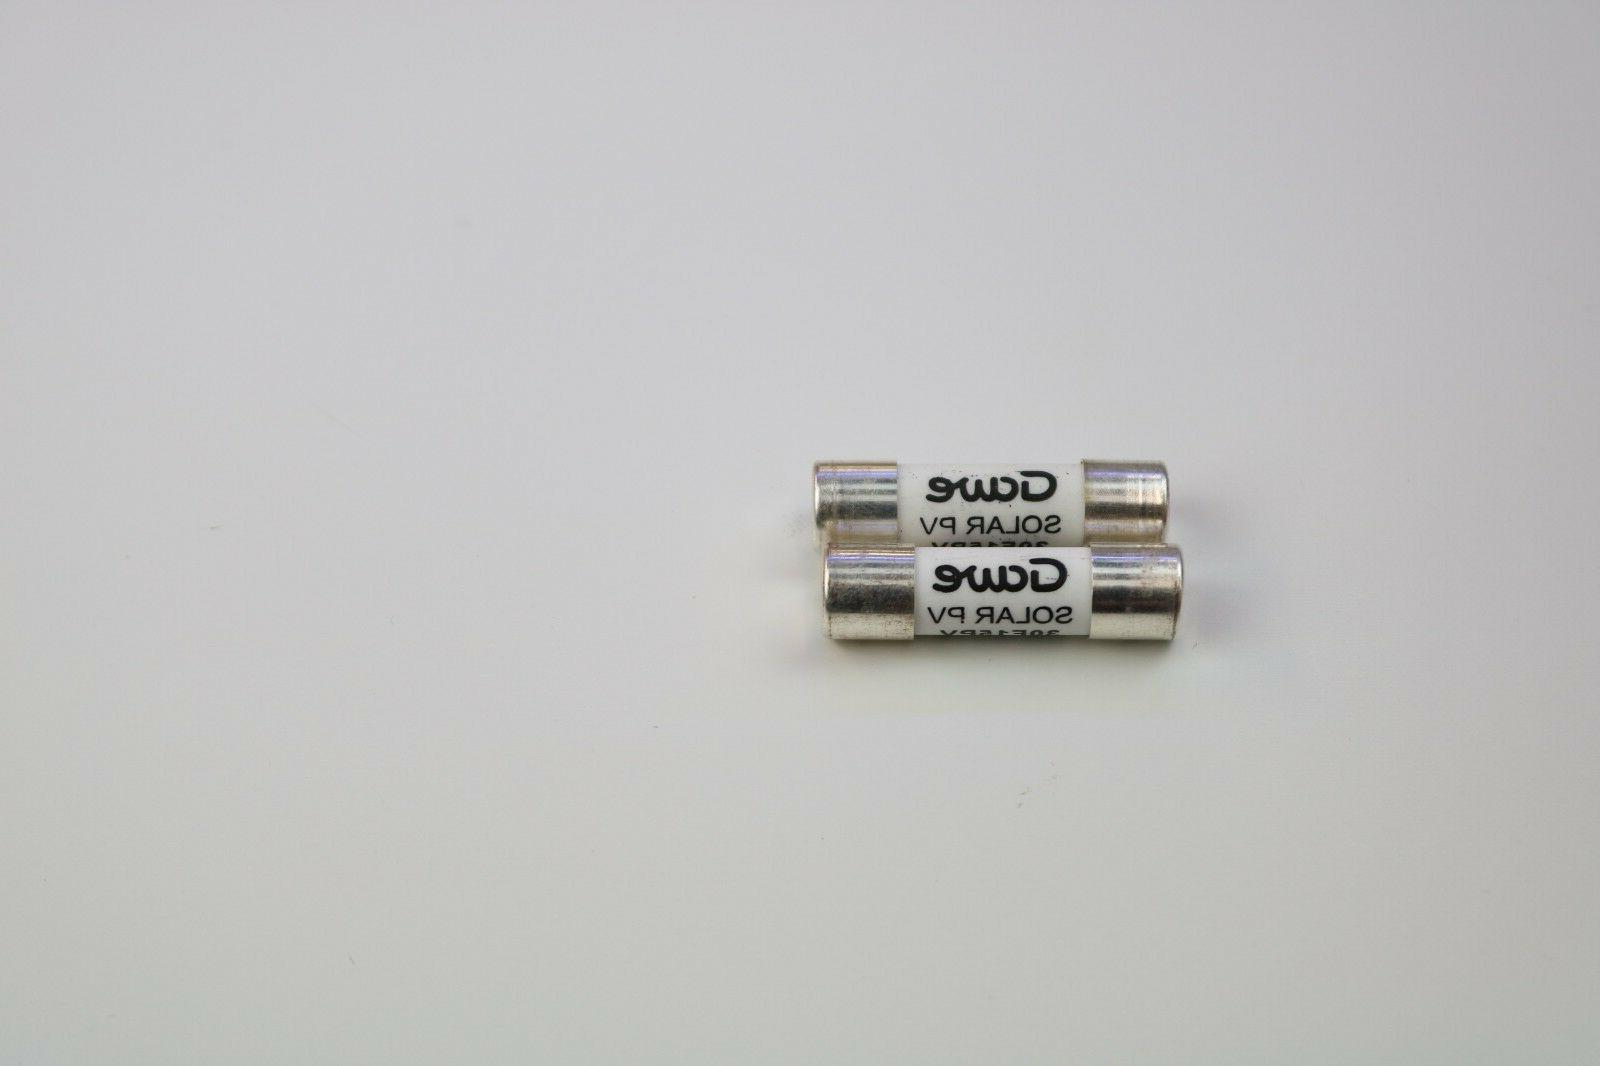 Solar PV Fuses 15A protection tp 1000Vdc pair of holder+fuse